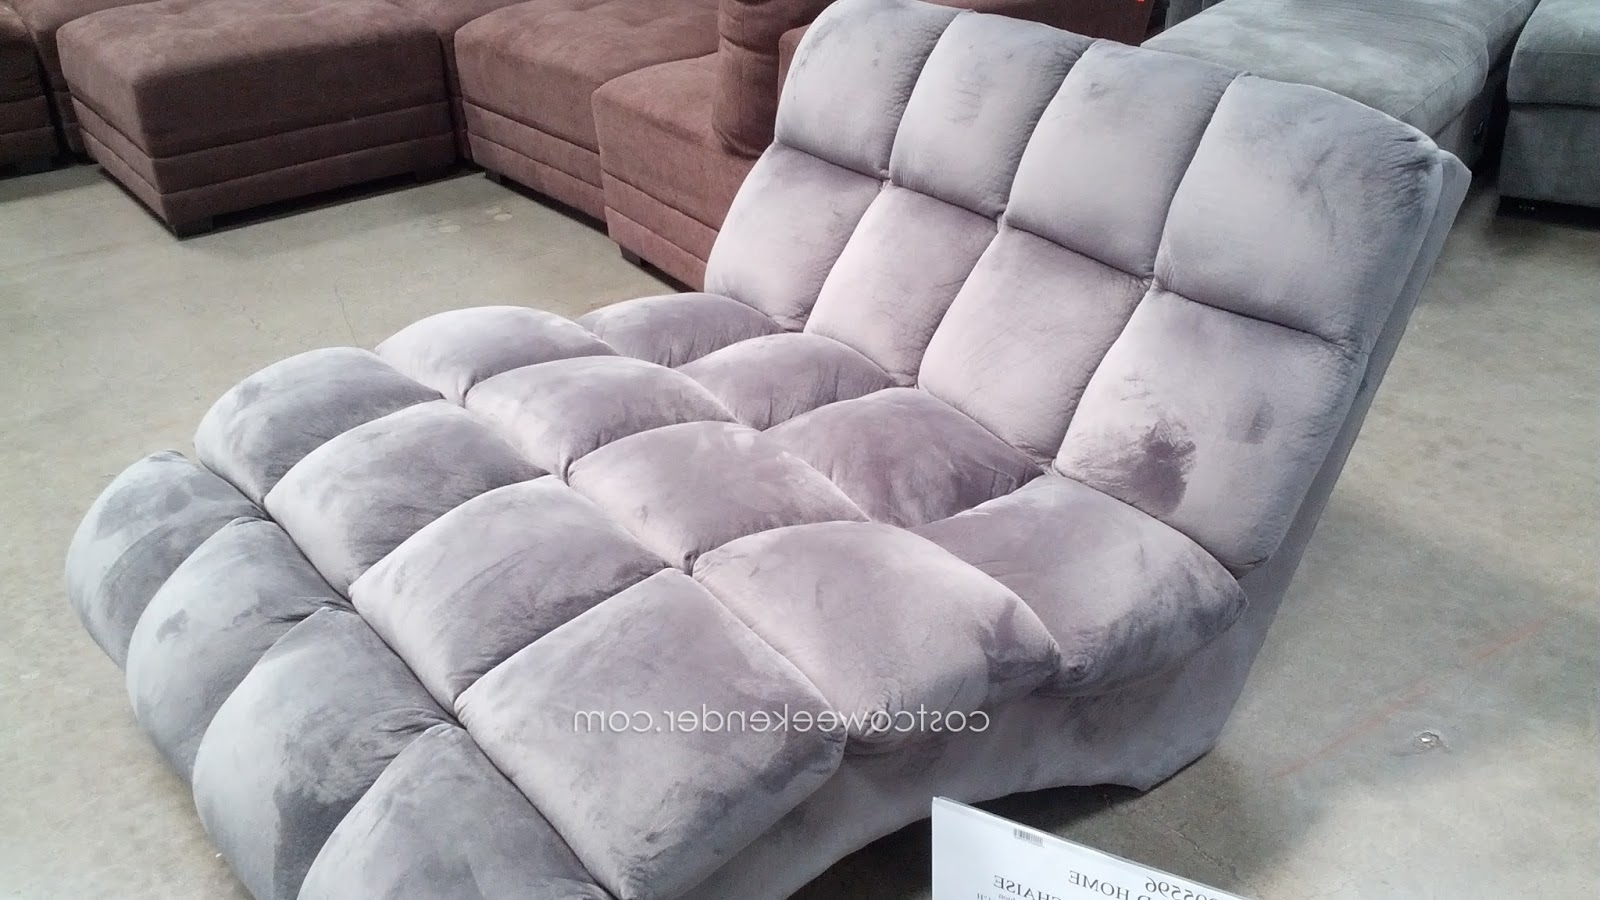 Emerald Home Boylston Double Chaise Lounge At Costco (View 8 of 15)